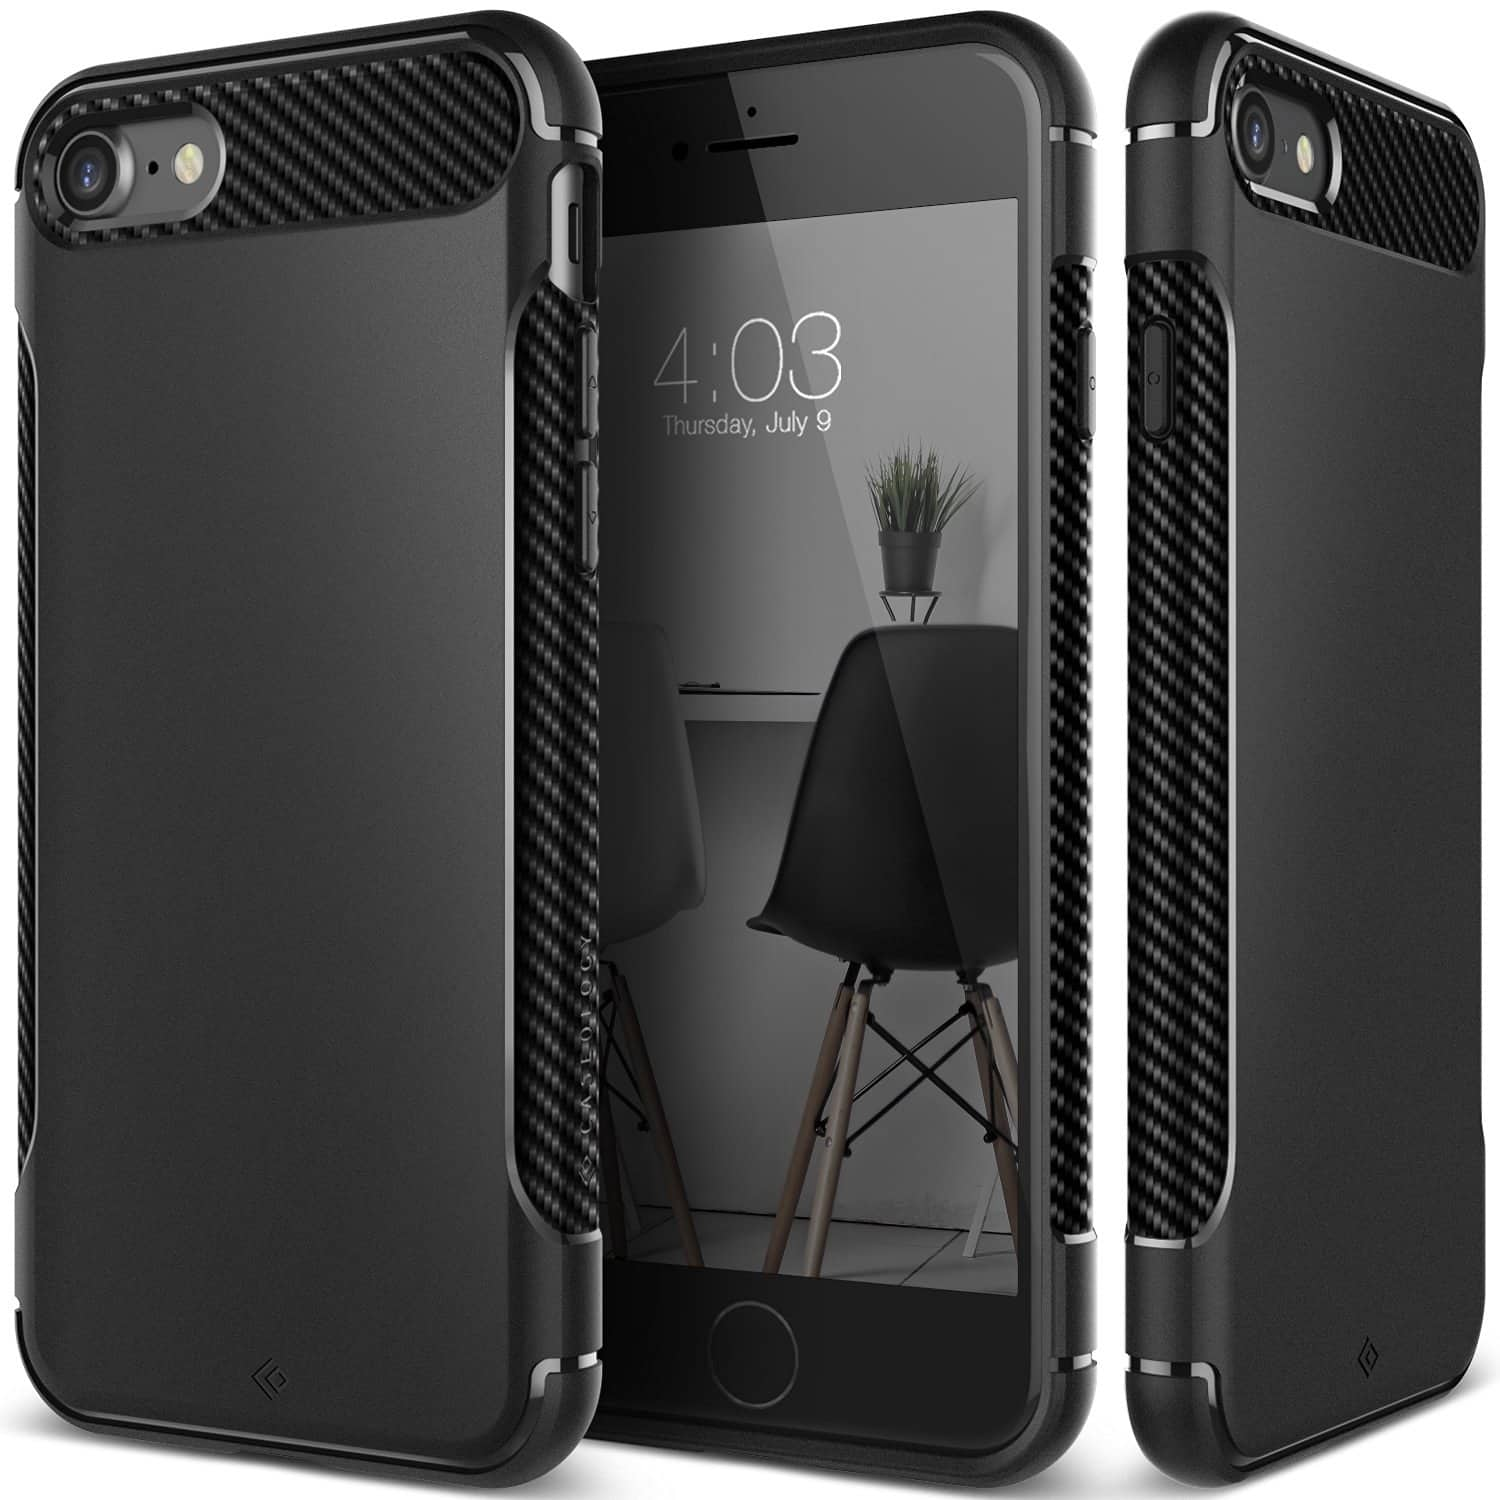 Caseology iPhone 7 cases from $3 + free ship with Prime or on orders over $49